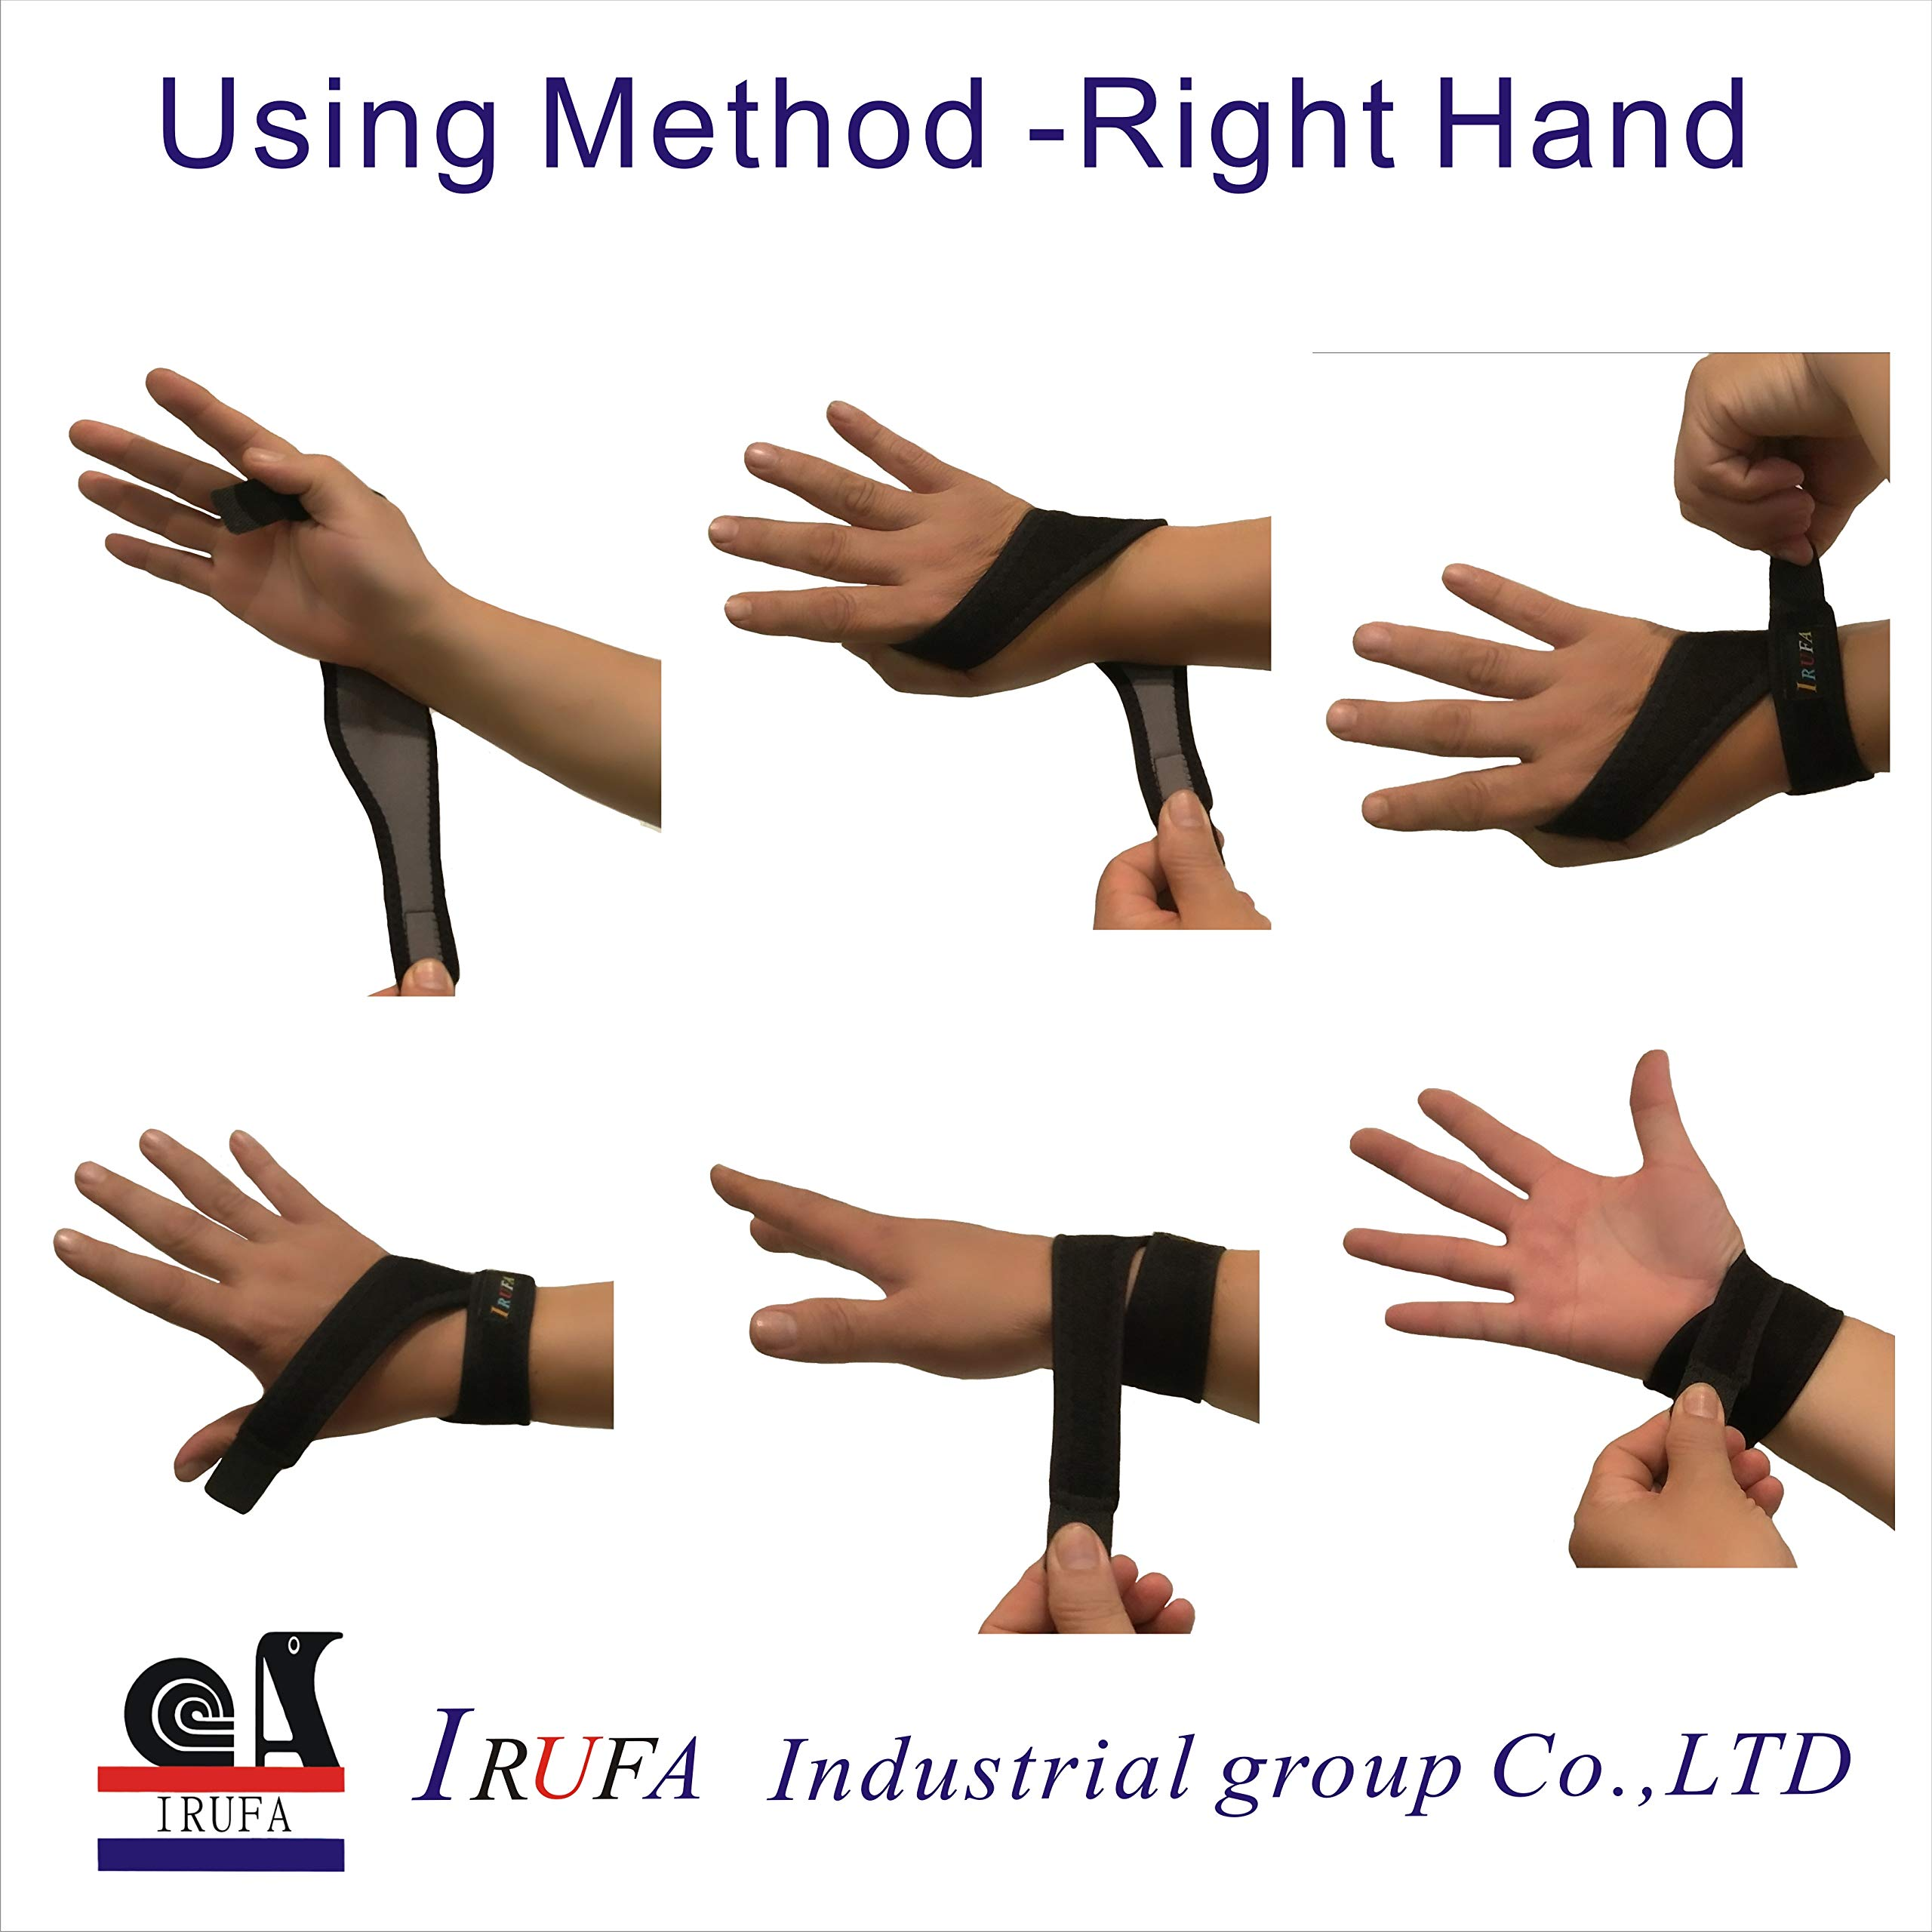 IRUFA,WR-OS-17,3D Breathable Spacer Fabric Wrist Brace, for TFCC Tear- Triangular Fibrocartilage Complex Injuries, Ulnar Sided Wrist Pain, Weight Bearing Strain, One PCS (Spacer Fabric) by IRUFA (Image #3)